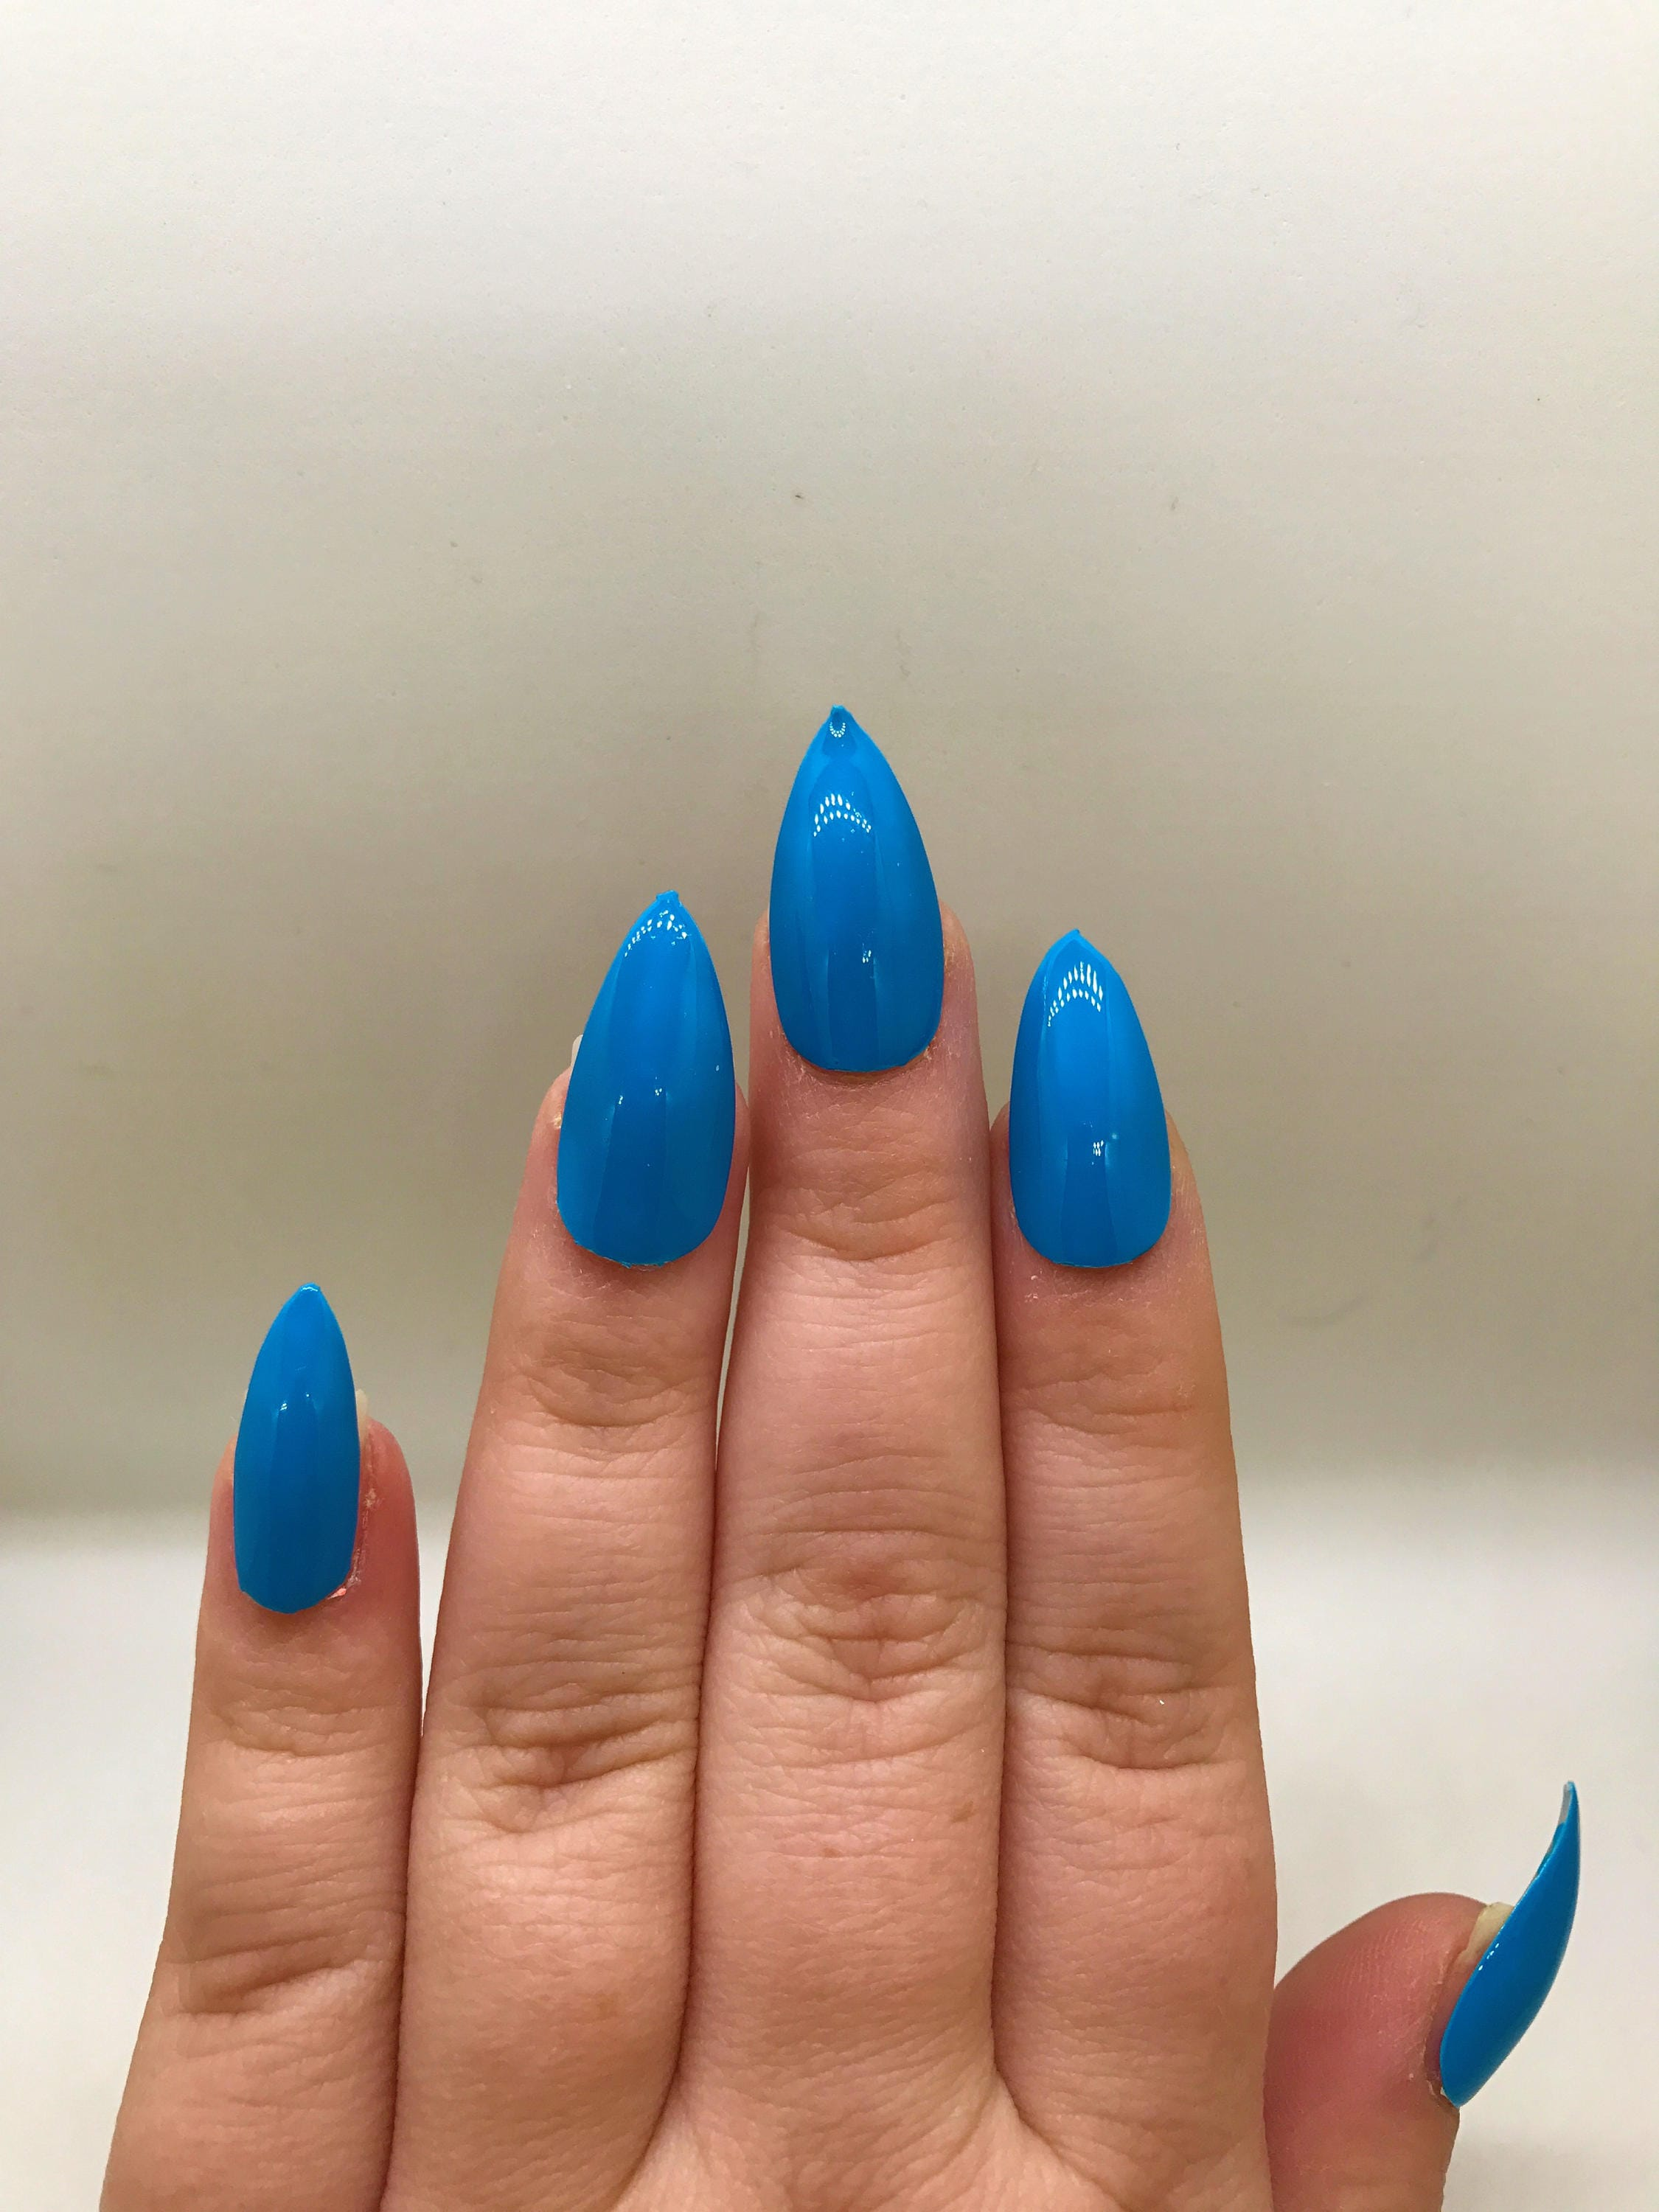 Neon Blue Fake Nails | Press On | Glue On Nails | Different Shapes ...